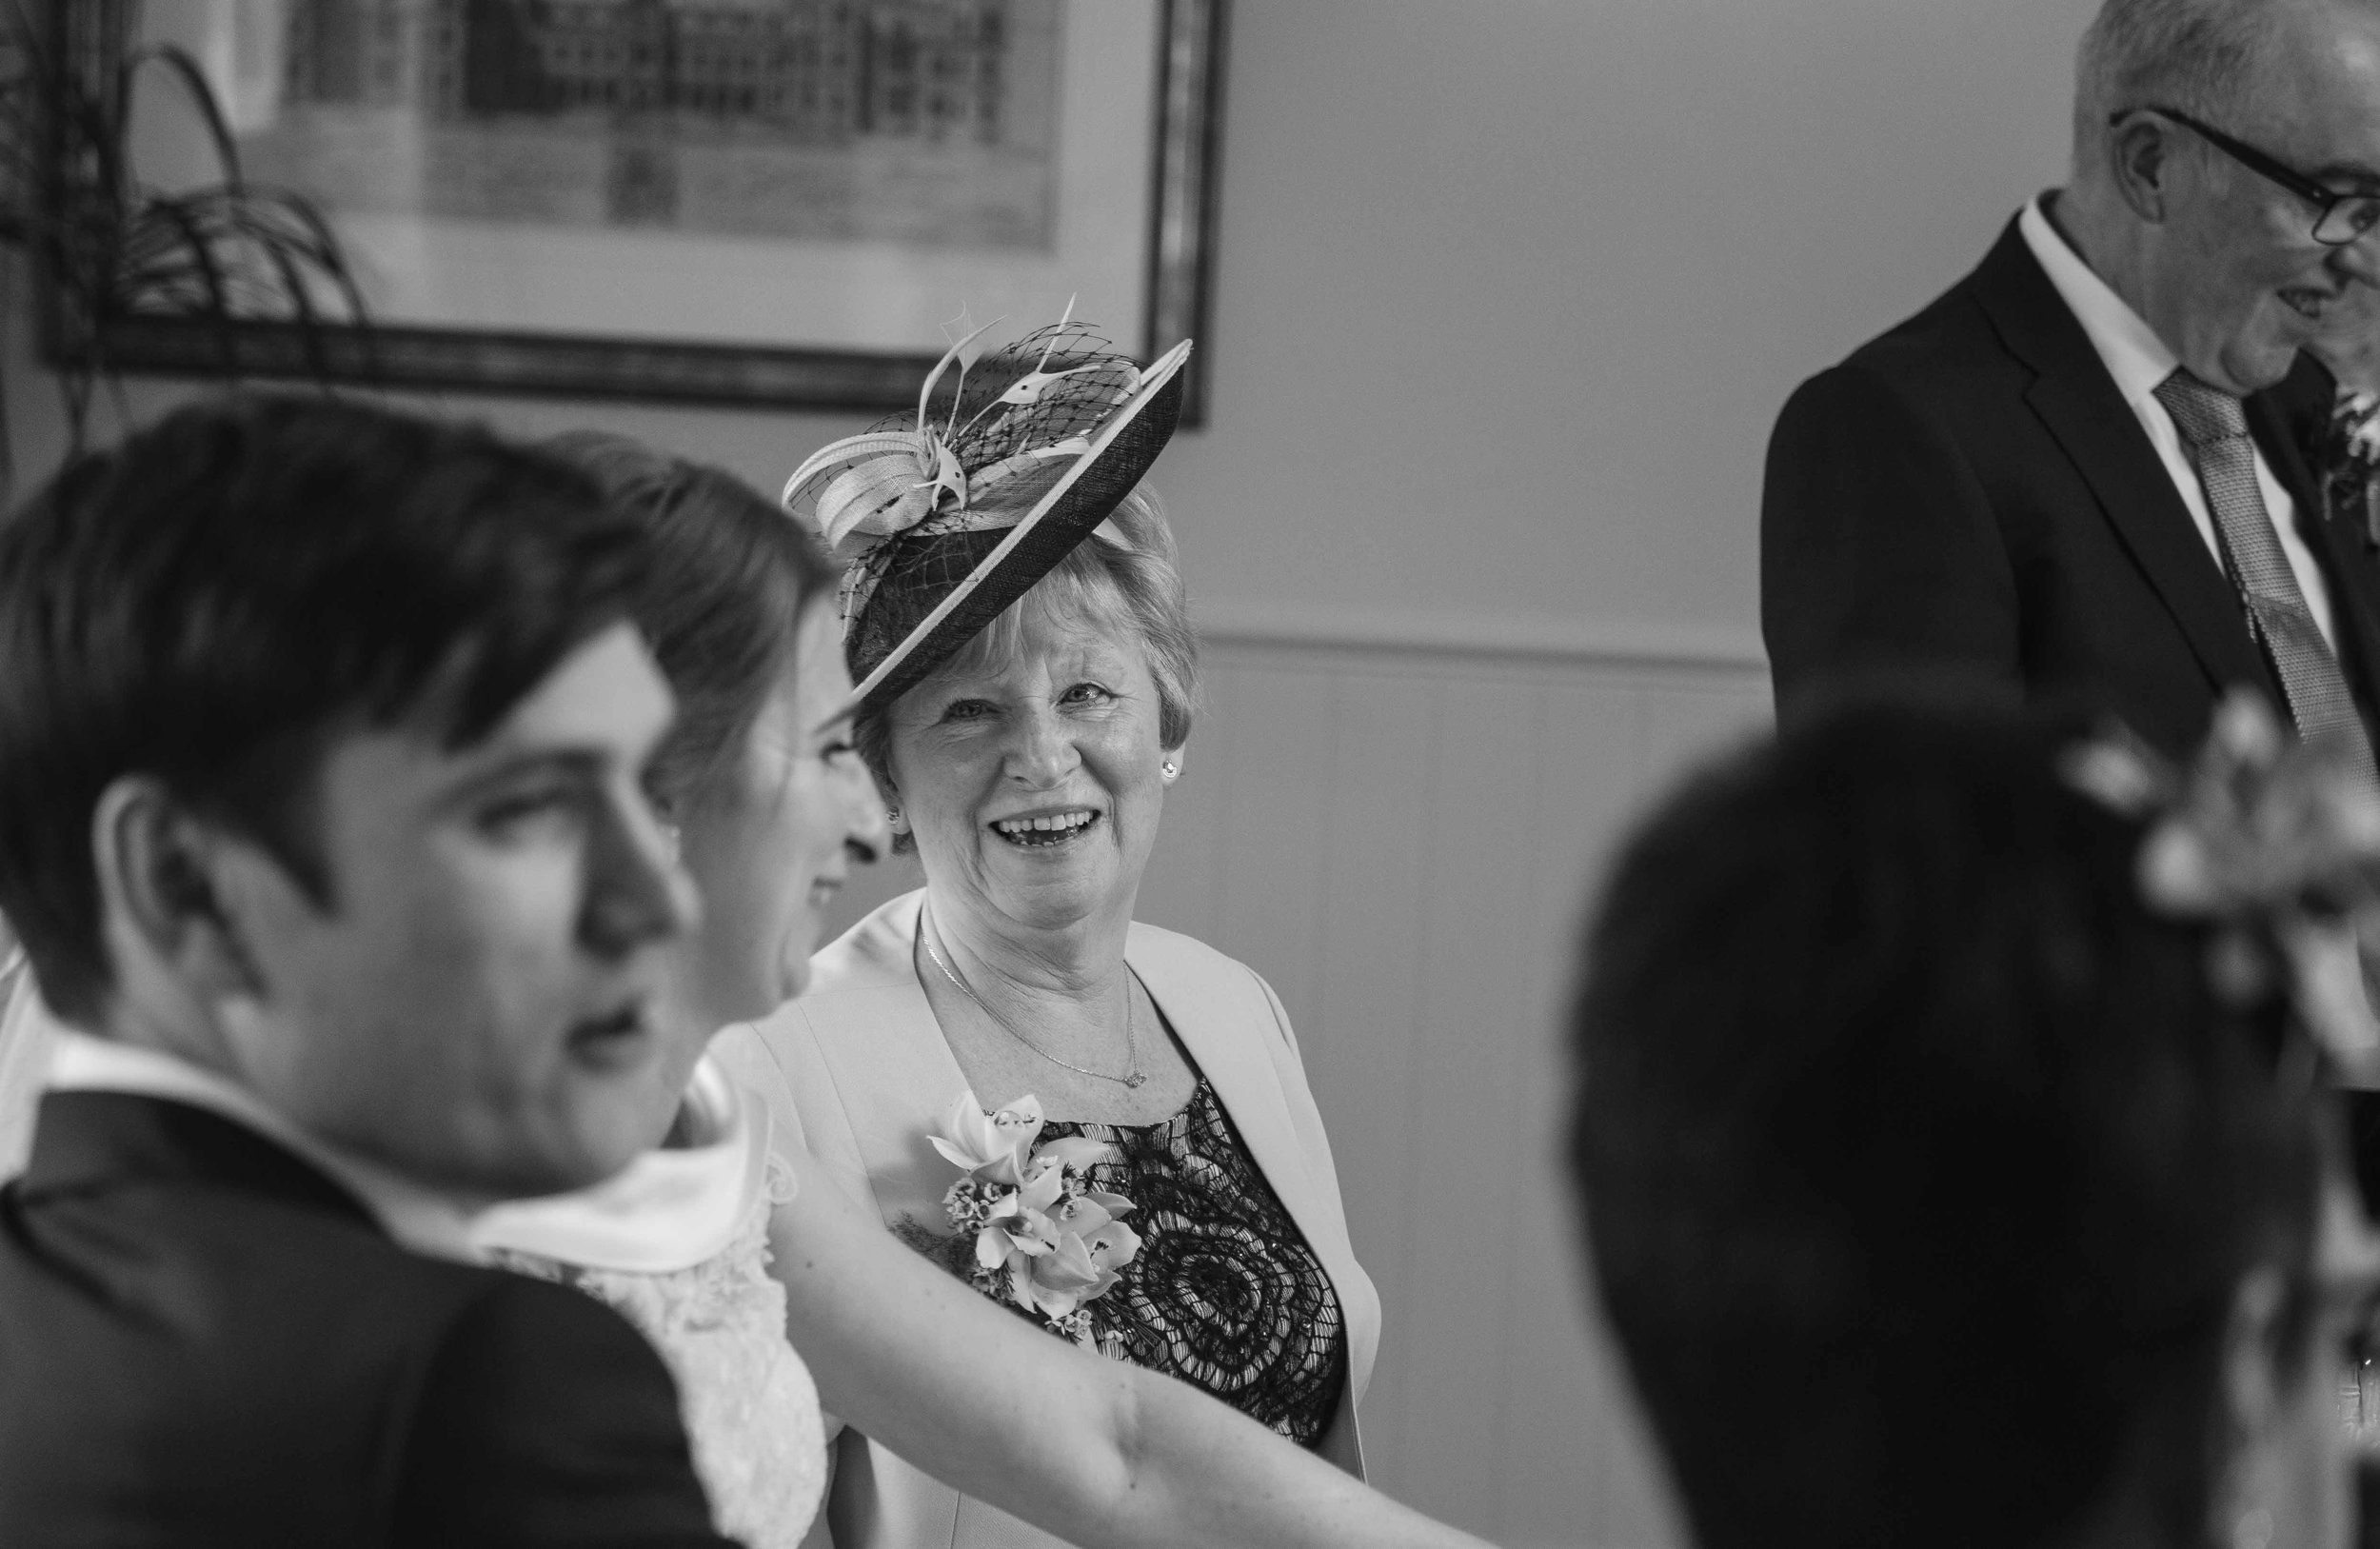 Wedding photographer in cheshire (1 of 1)-40.jpg